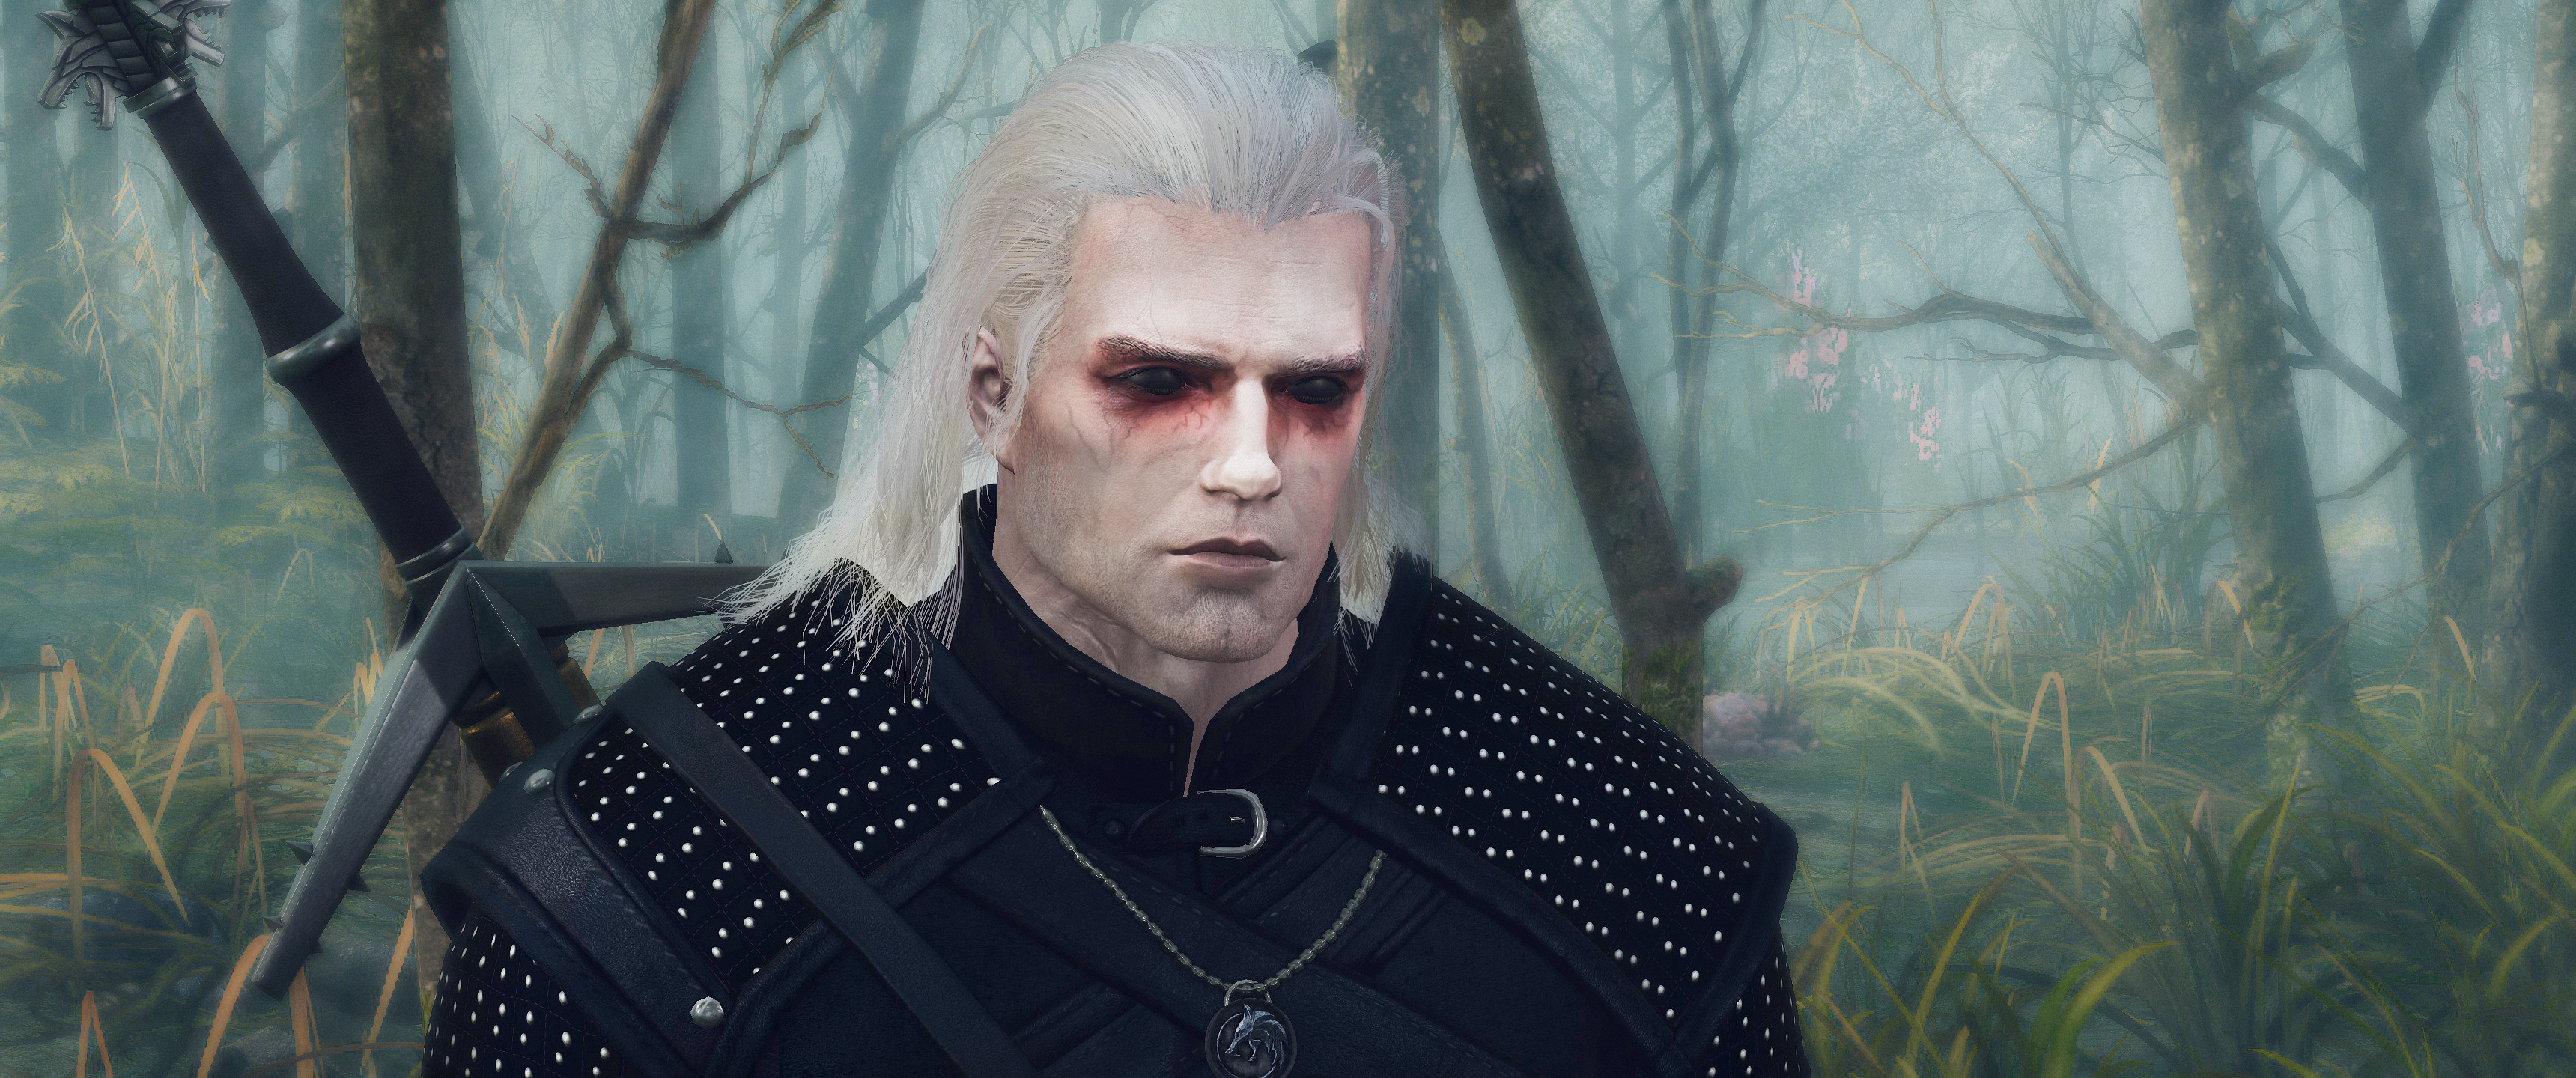 Mod takes Henry Cavill to the world of The Witcher: Wild Hunt 1